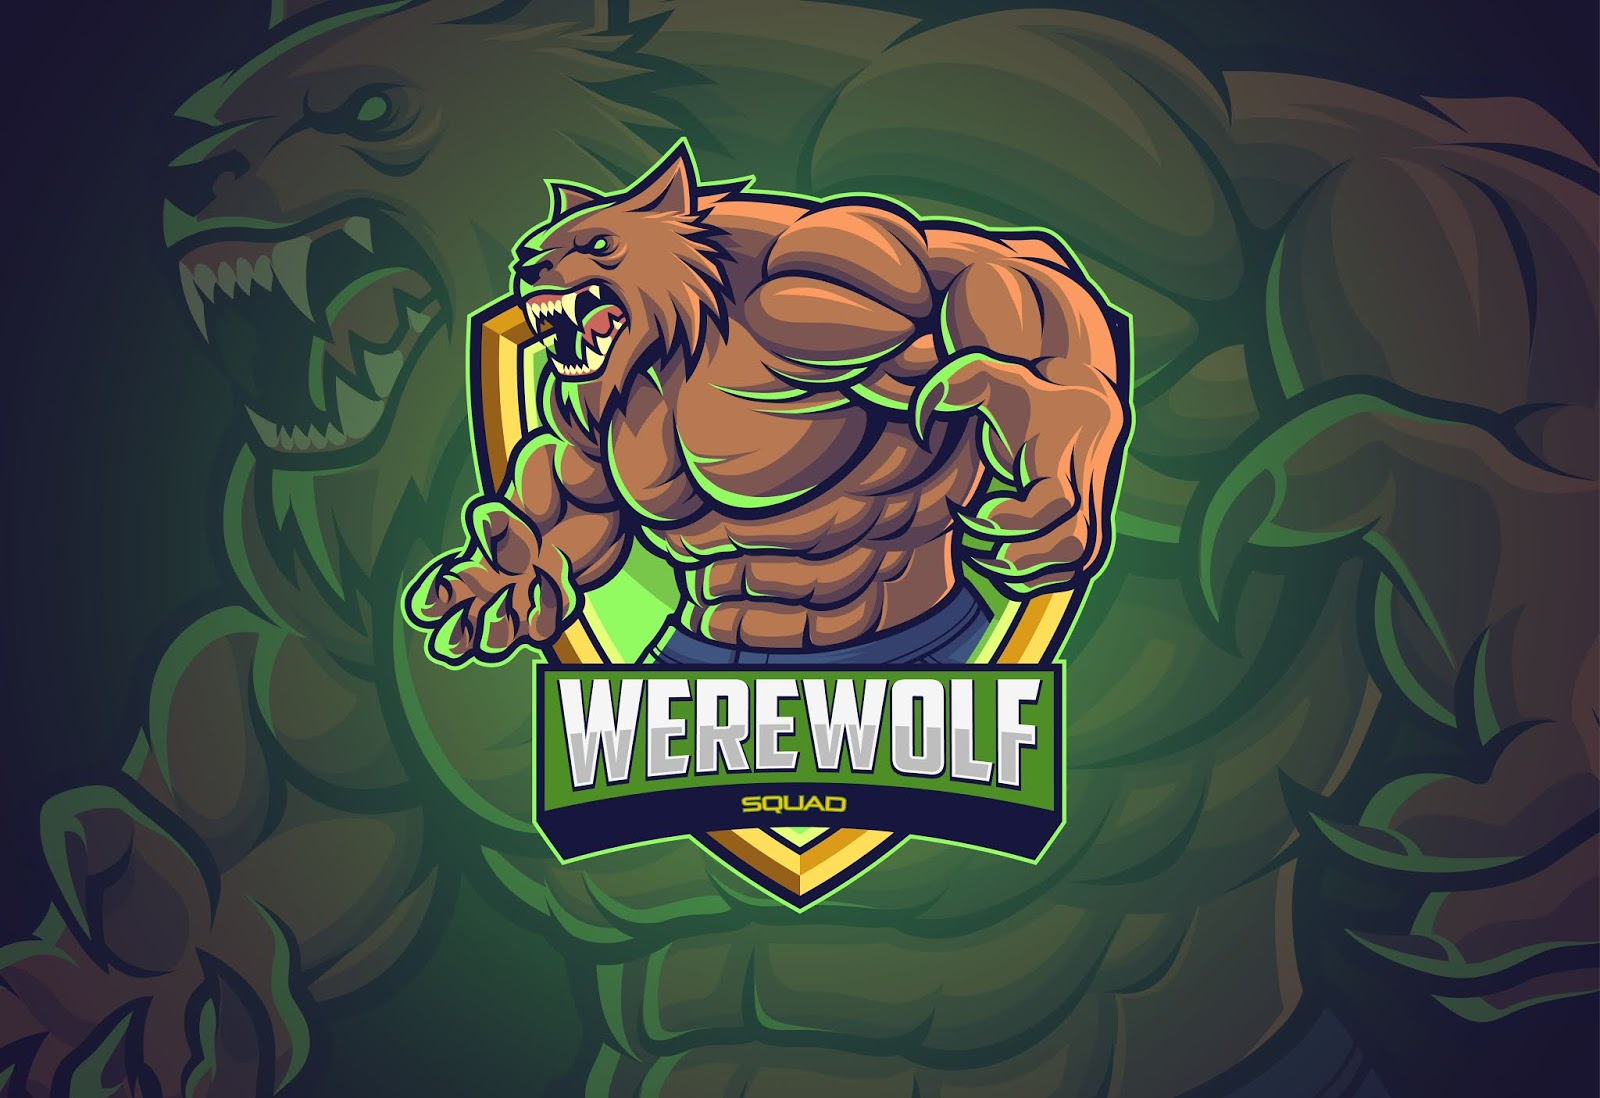 Werewolf Esports Logo Design Your Team Free Download Vector CDR, AI, EPS and PNG Formats